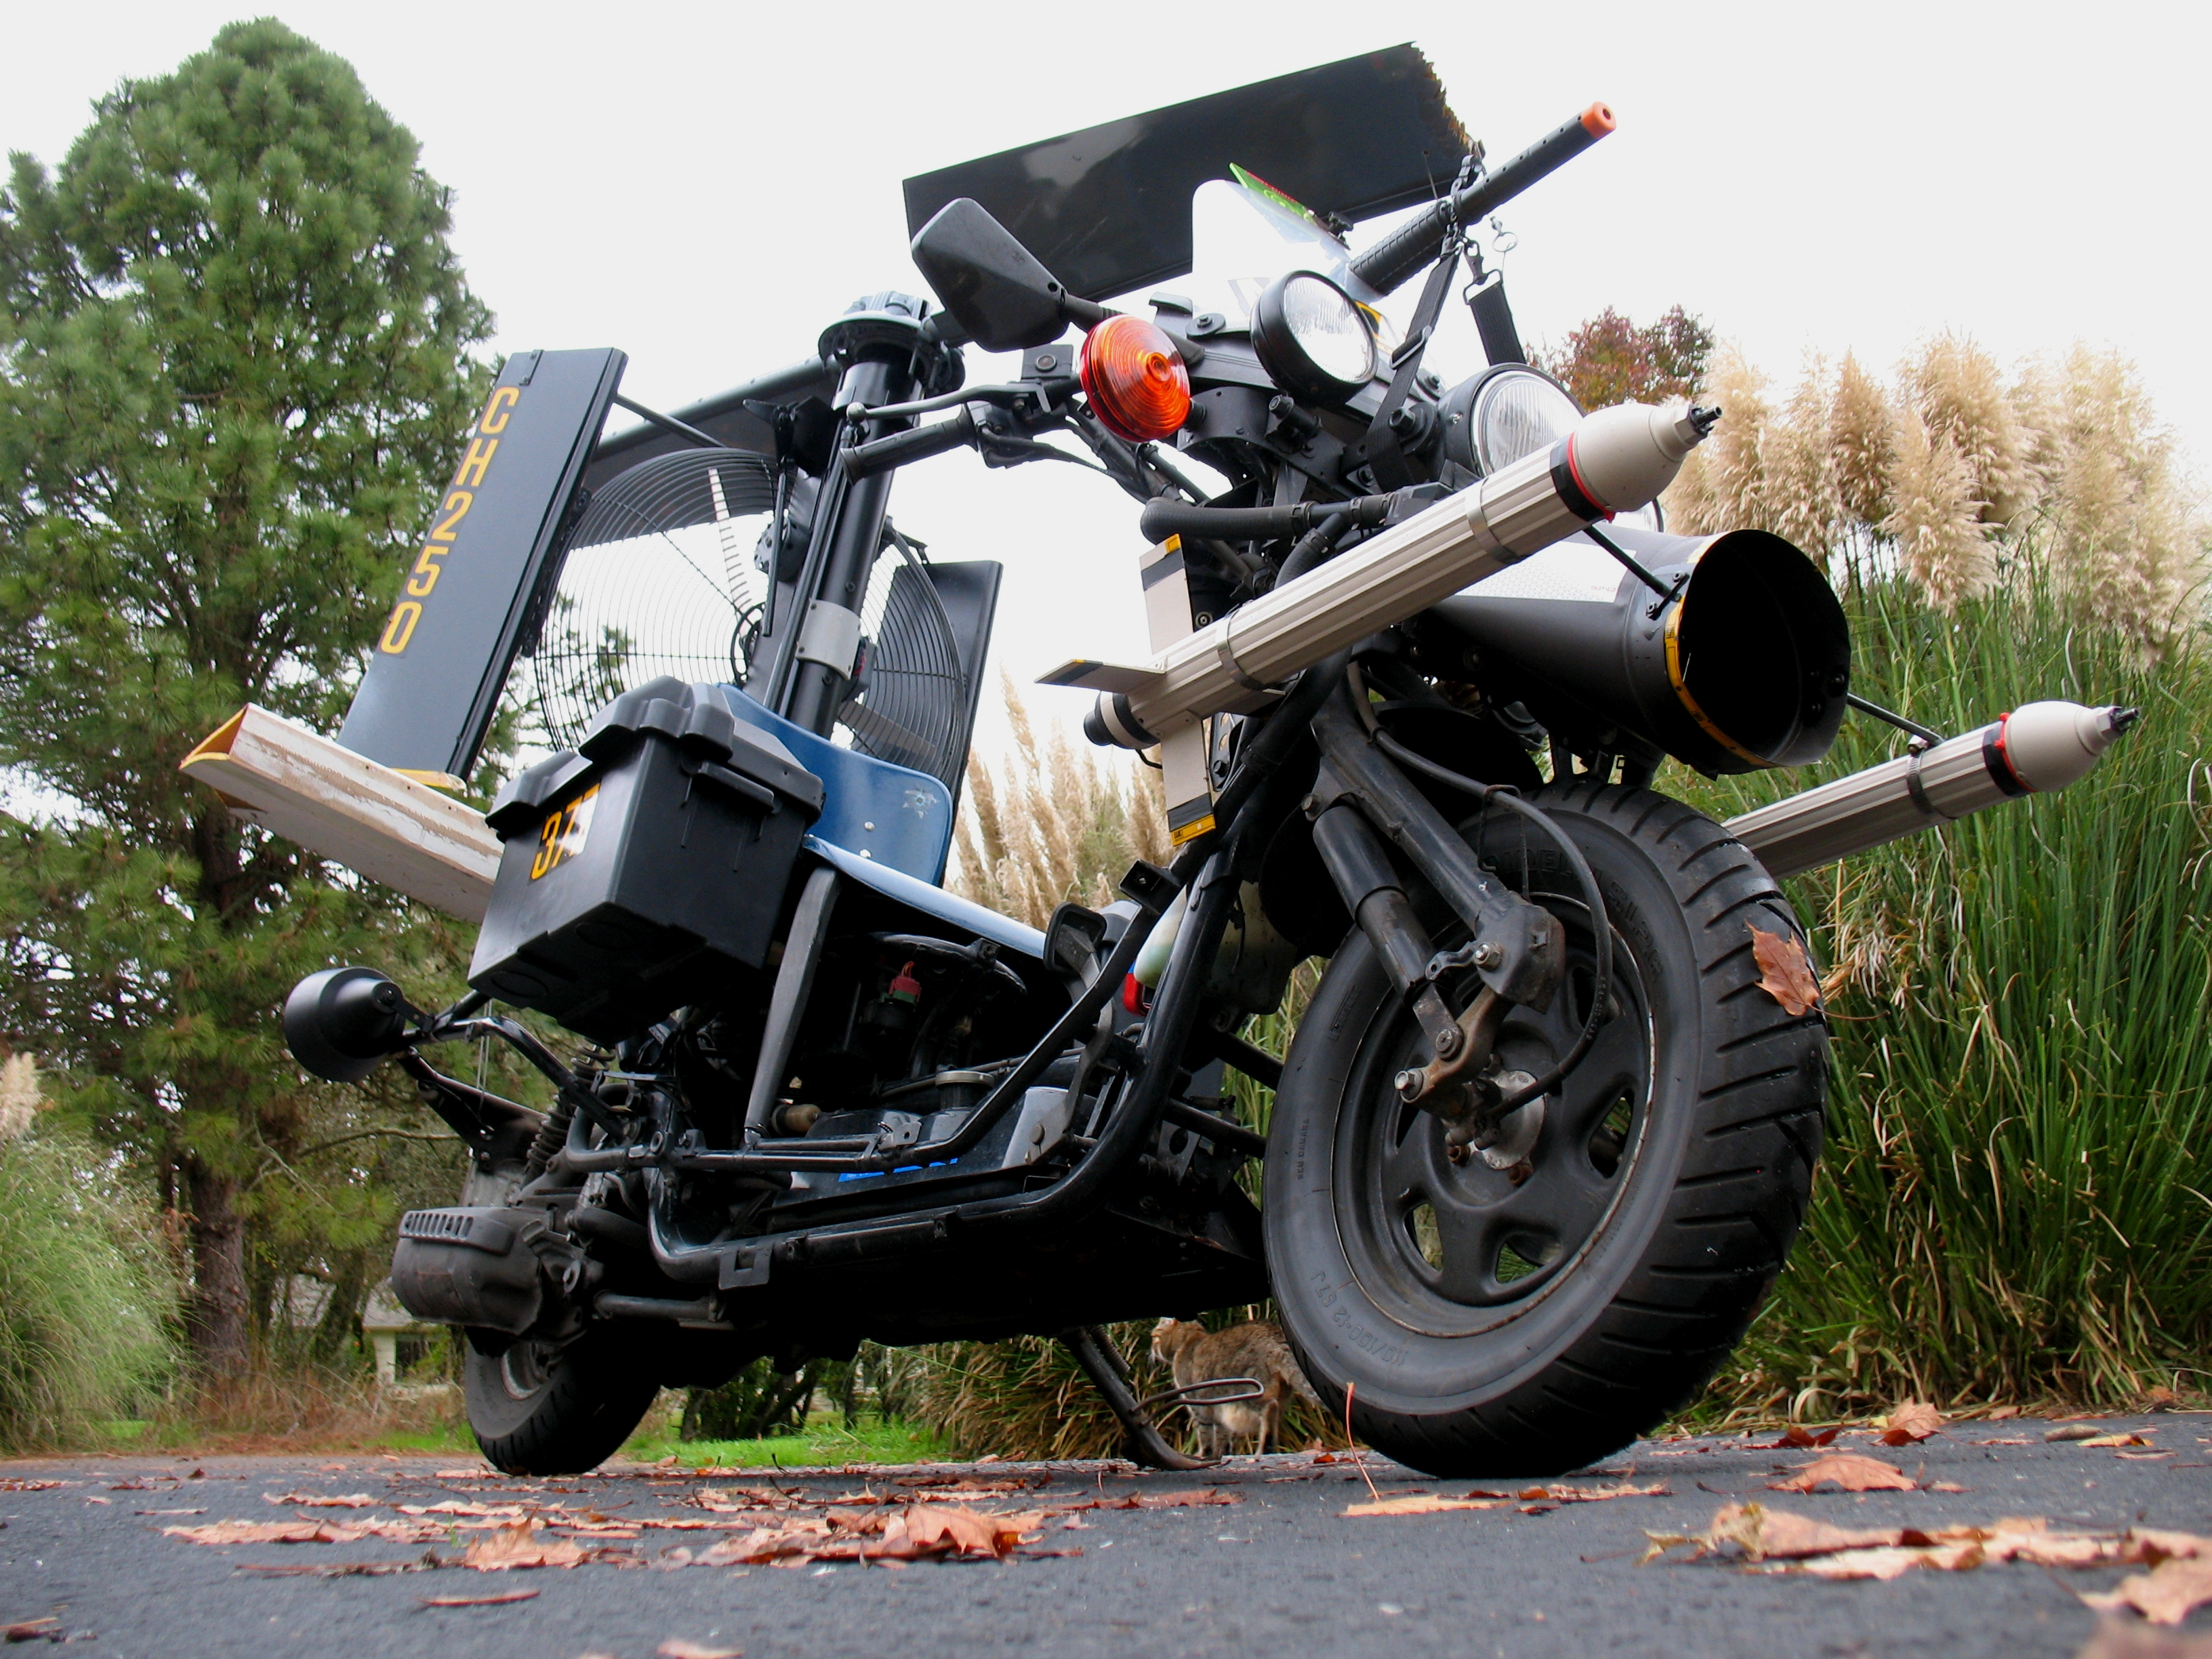 Death Scooter